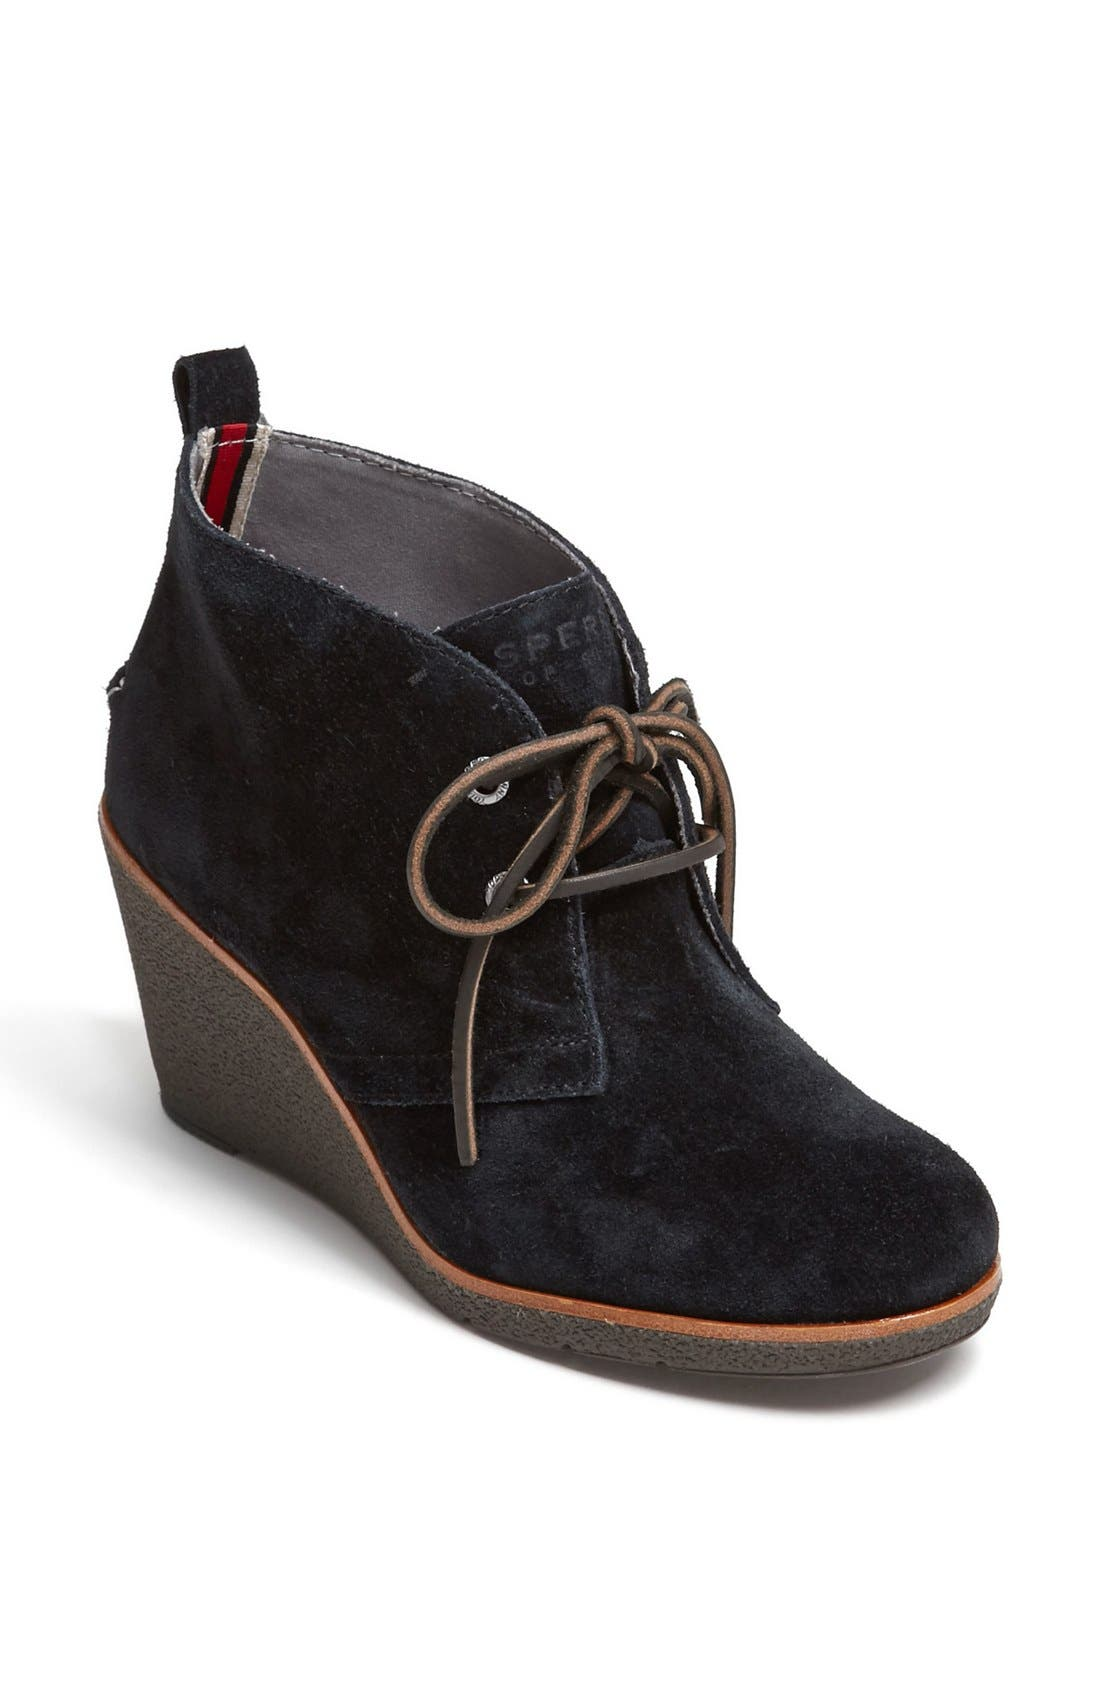 Top Sider<sup>®</sup> 'Harlow' Bootie,                             Main thumbnail 1, color,                             001